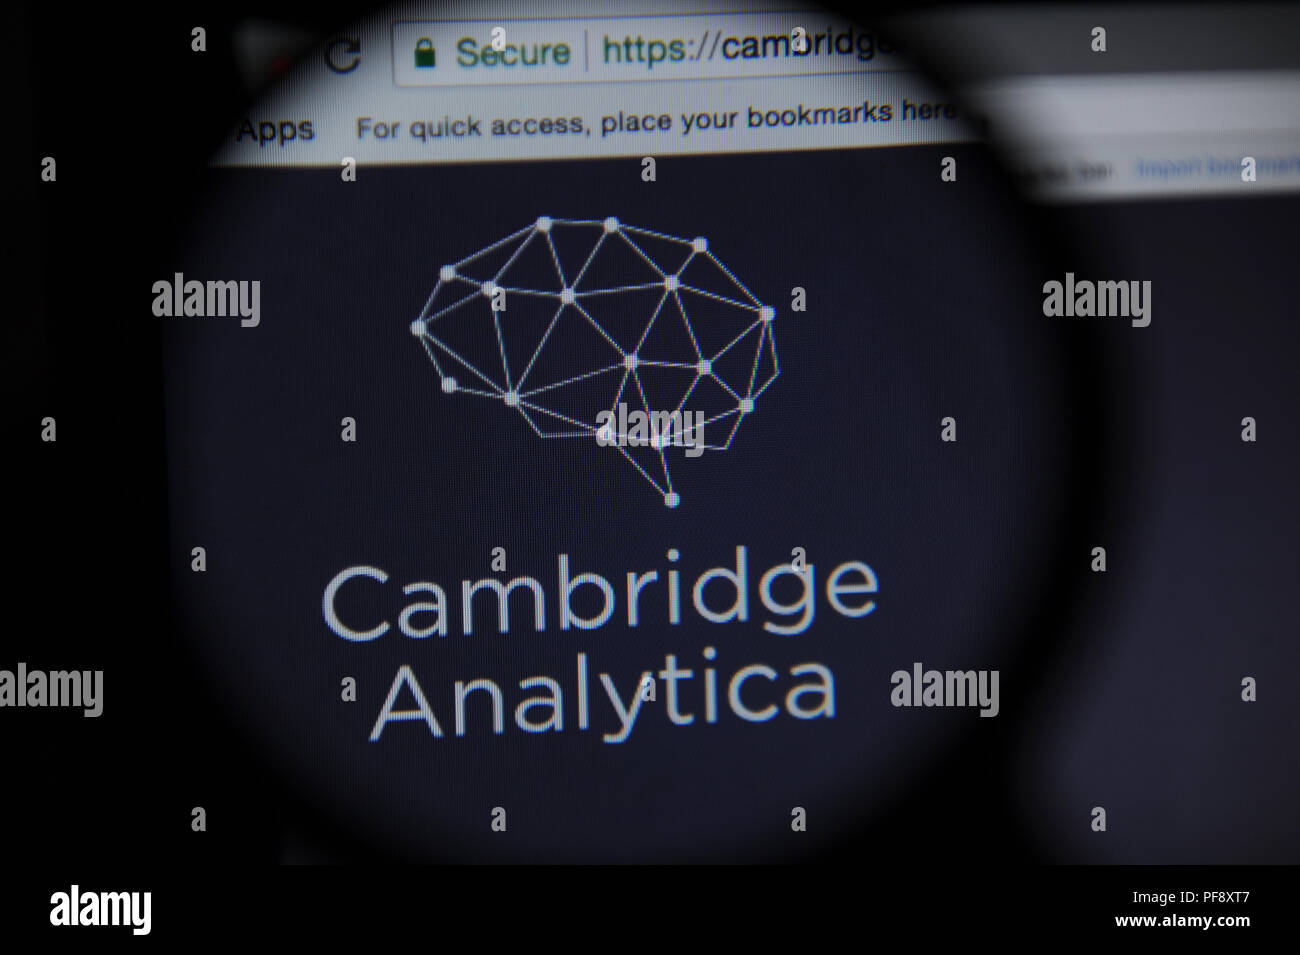 The Cambridge Analytica website website seen through a magnifying glass - Stock Image